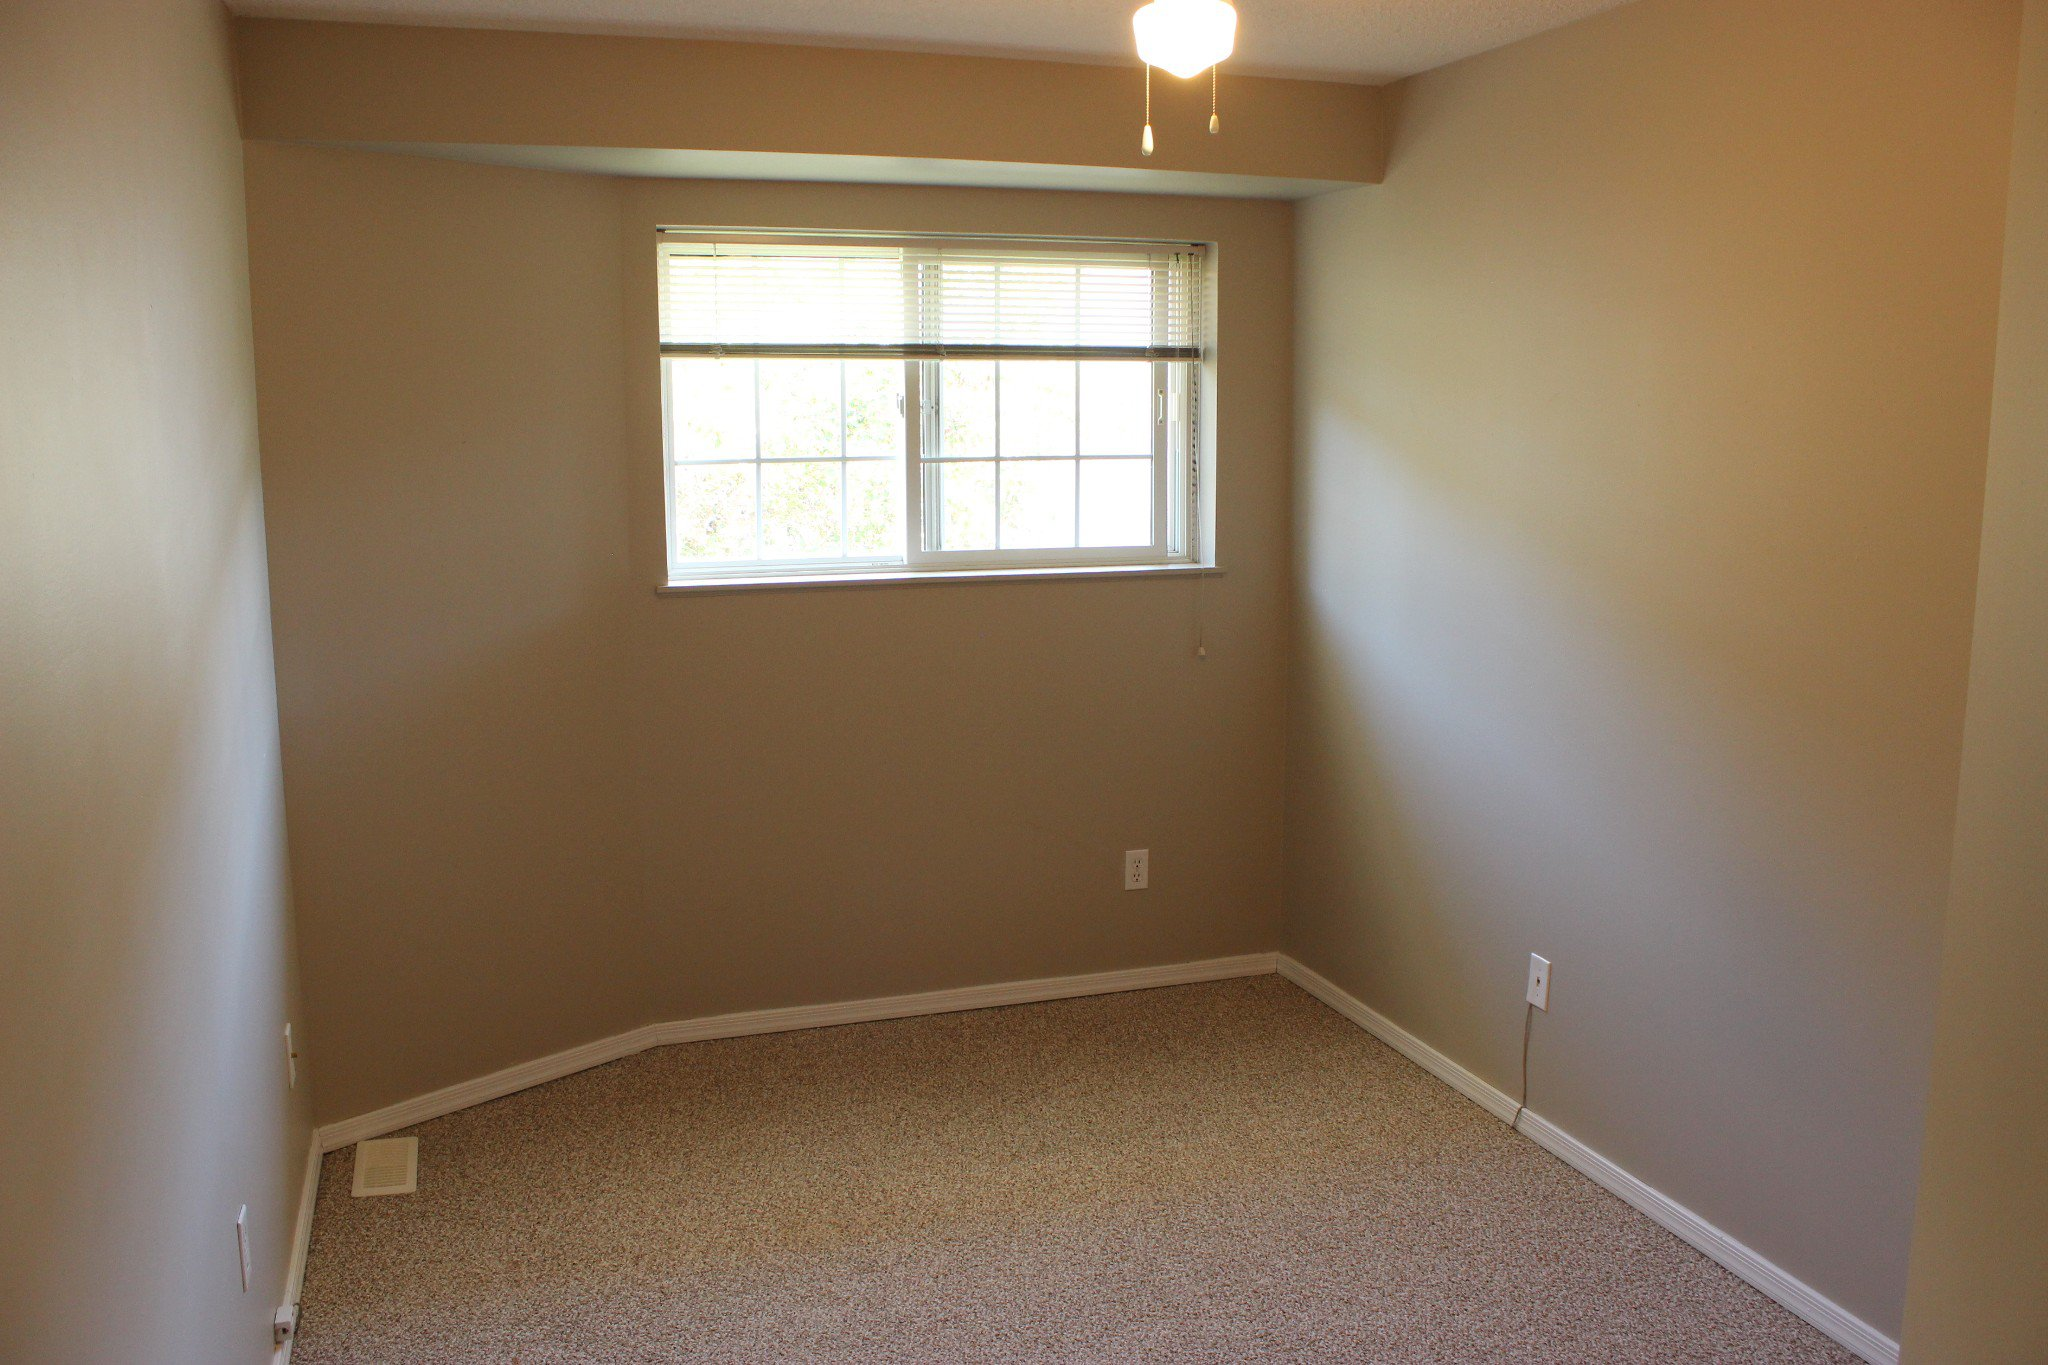 Photo 11: Photos: 47 2020 Robson Place in Kamloops: Sahali Multifamily for sale : MLS®# 158378